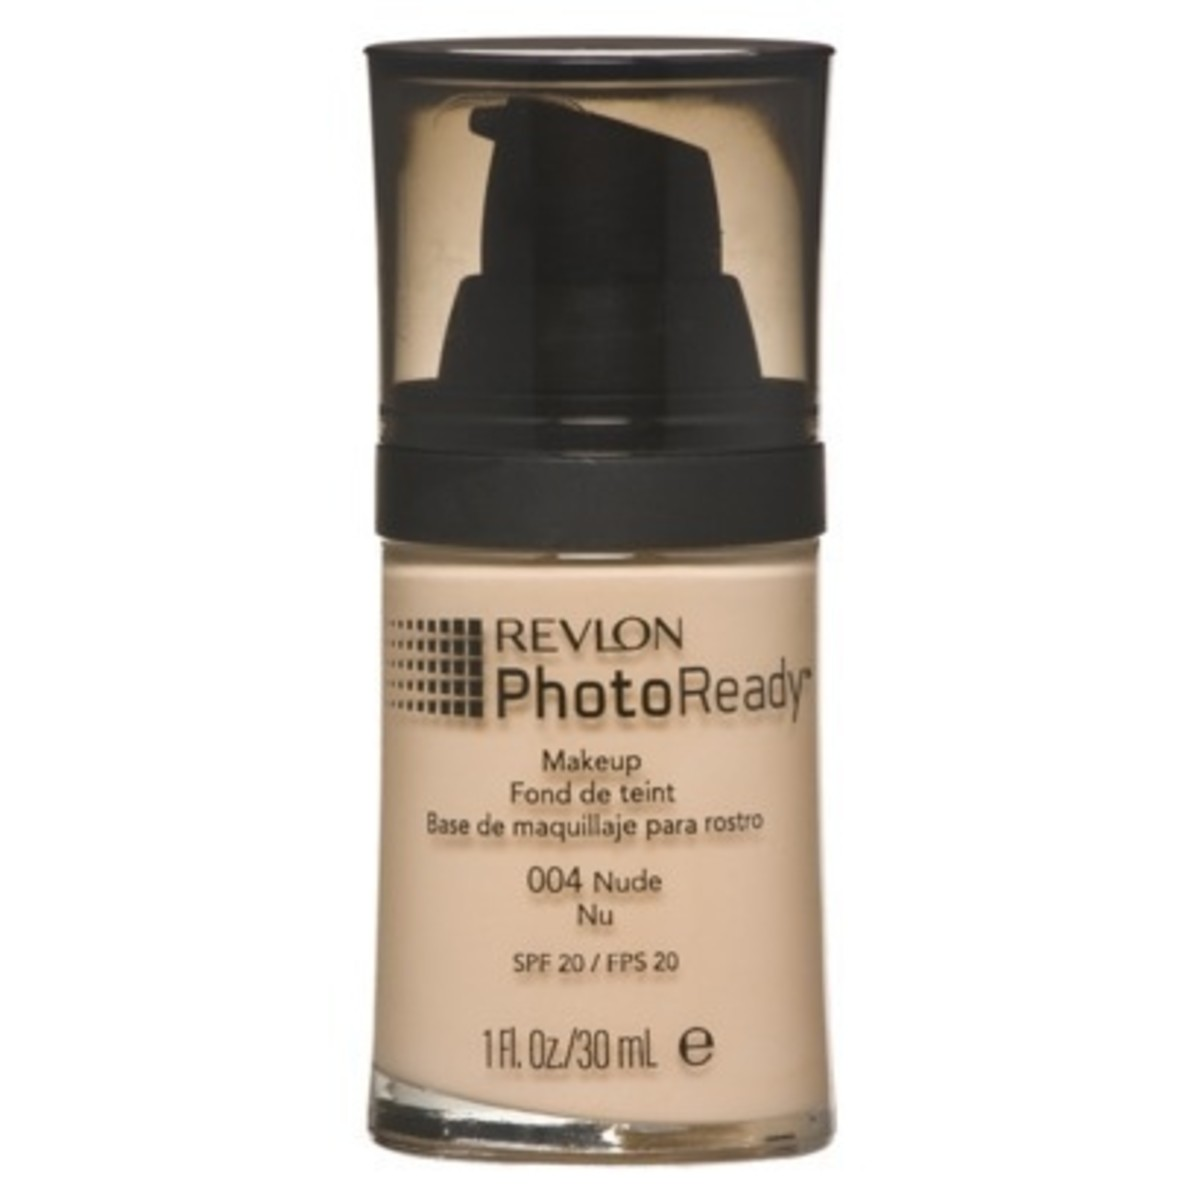 Revlon PhotoReady Makeup in Nude